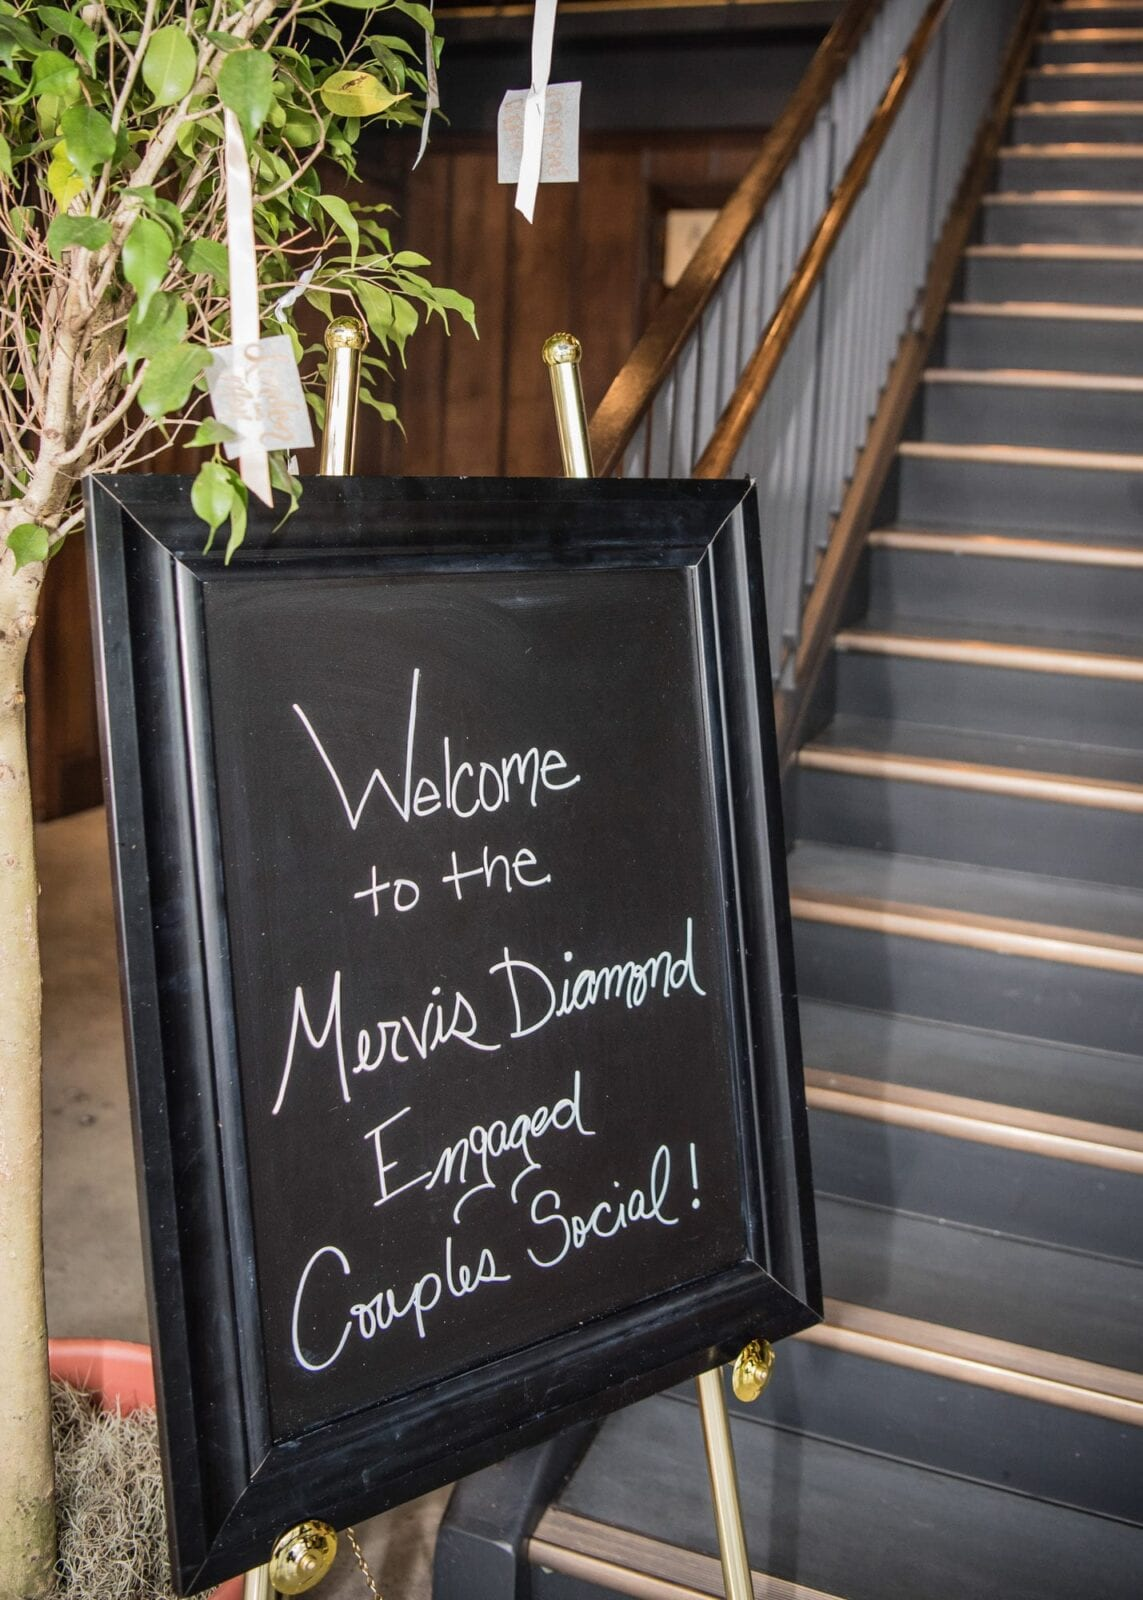 Photos from the Harty captures the District Bliss Couples Social for Mervis Diamond Importers and District Winery engaged couples in Washington, DC